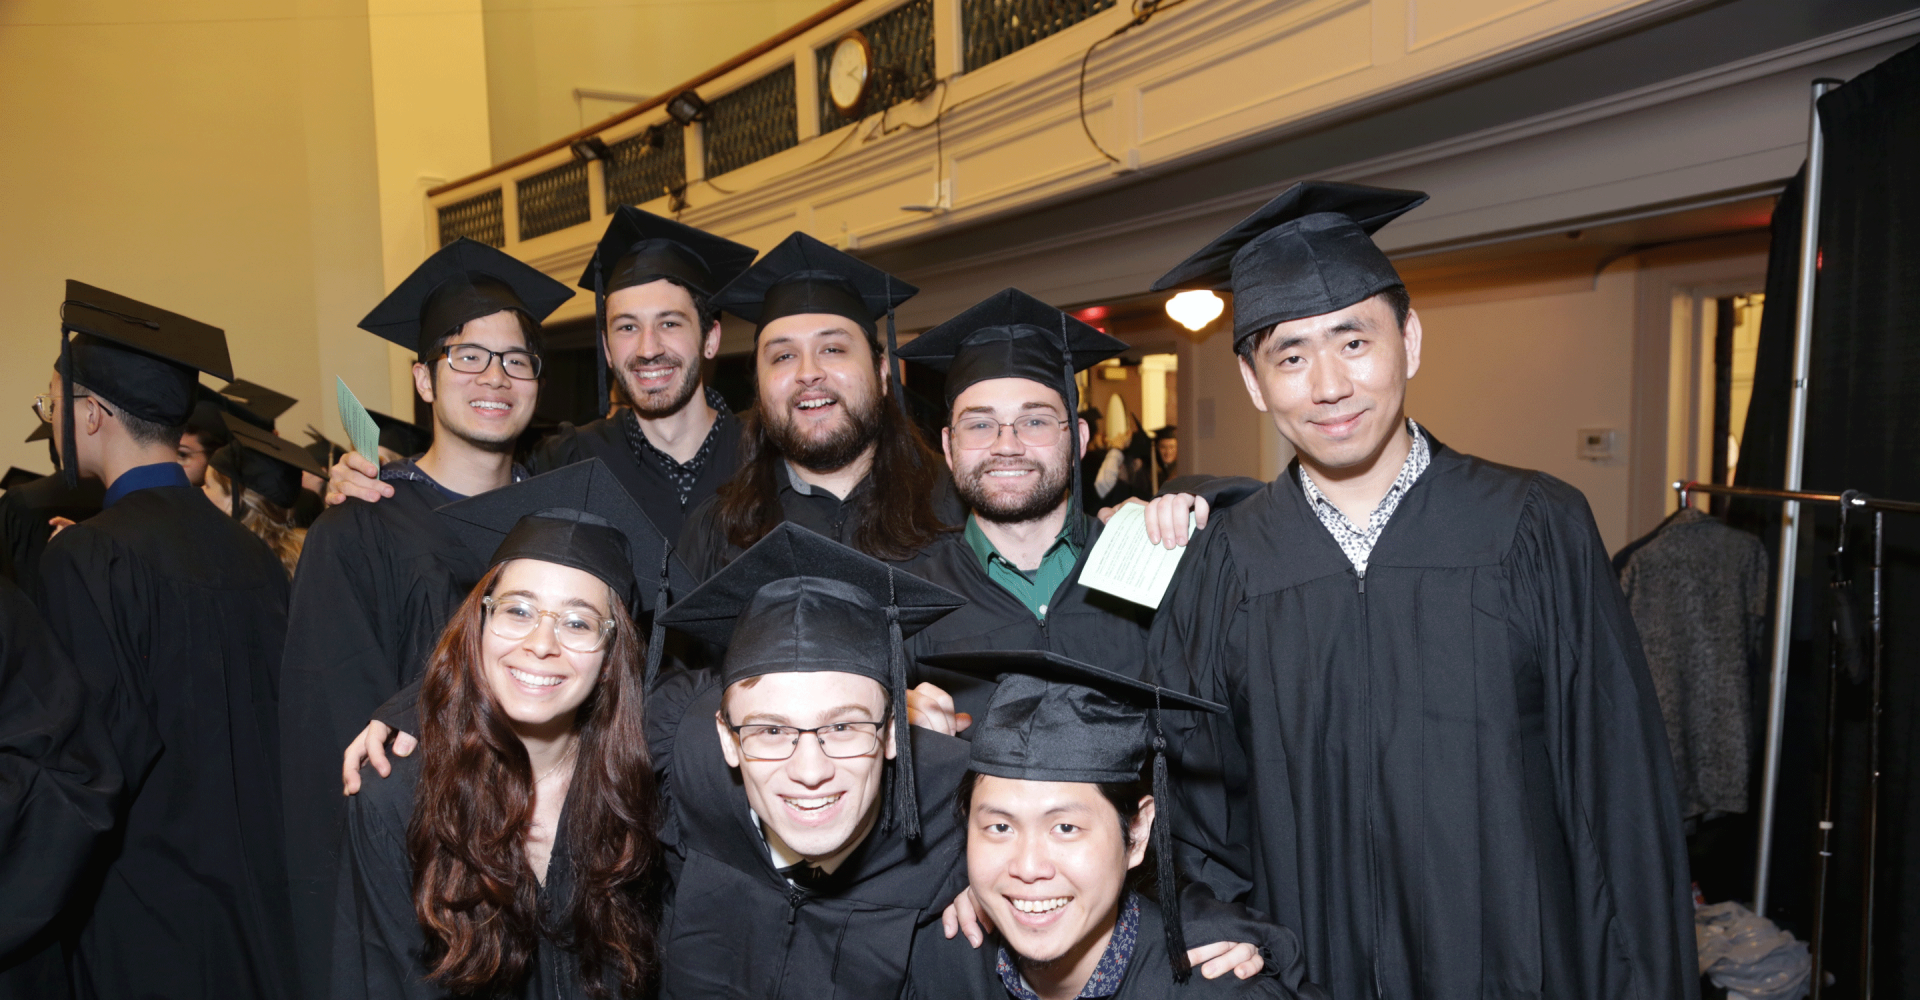 Eight smiling graduates wearing caps and gowns